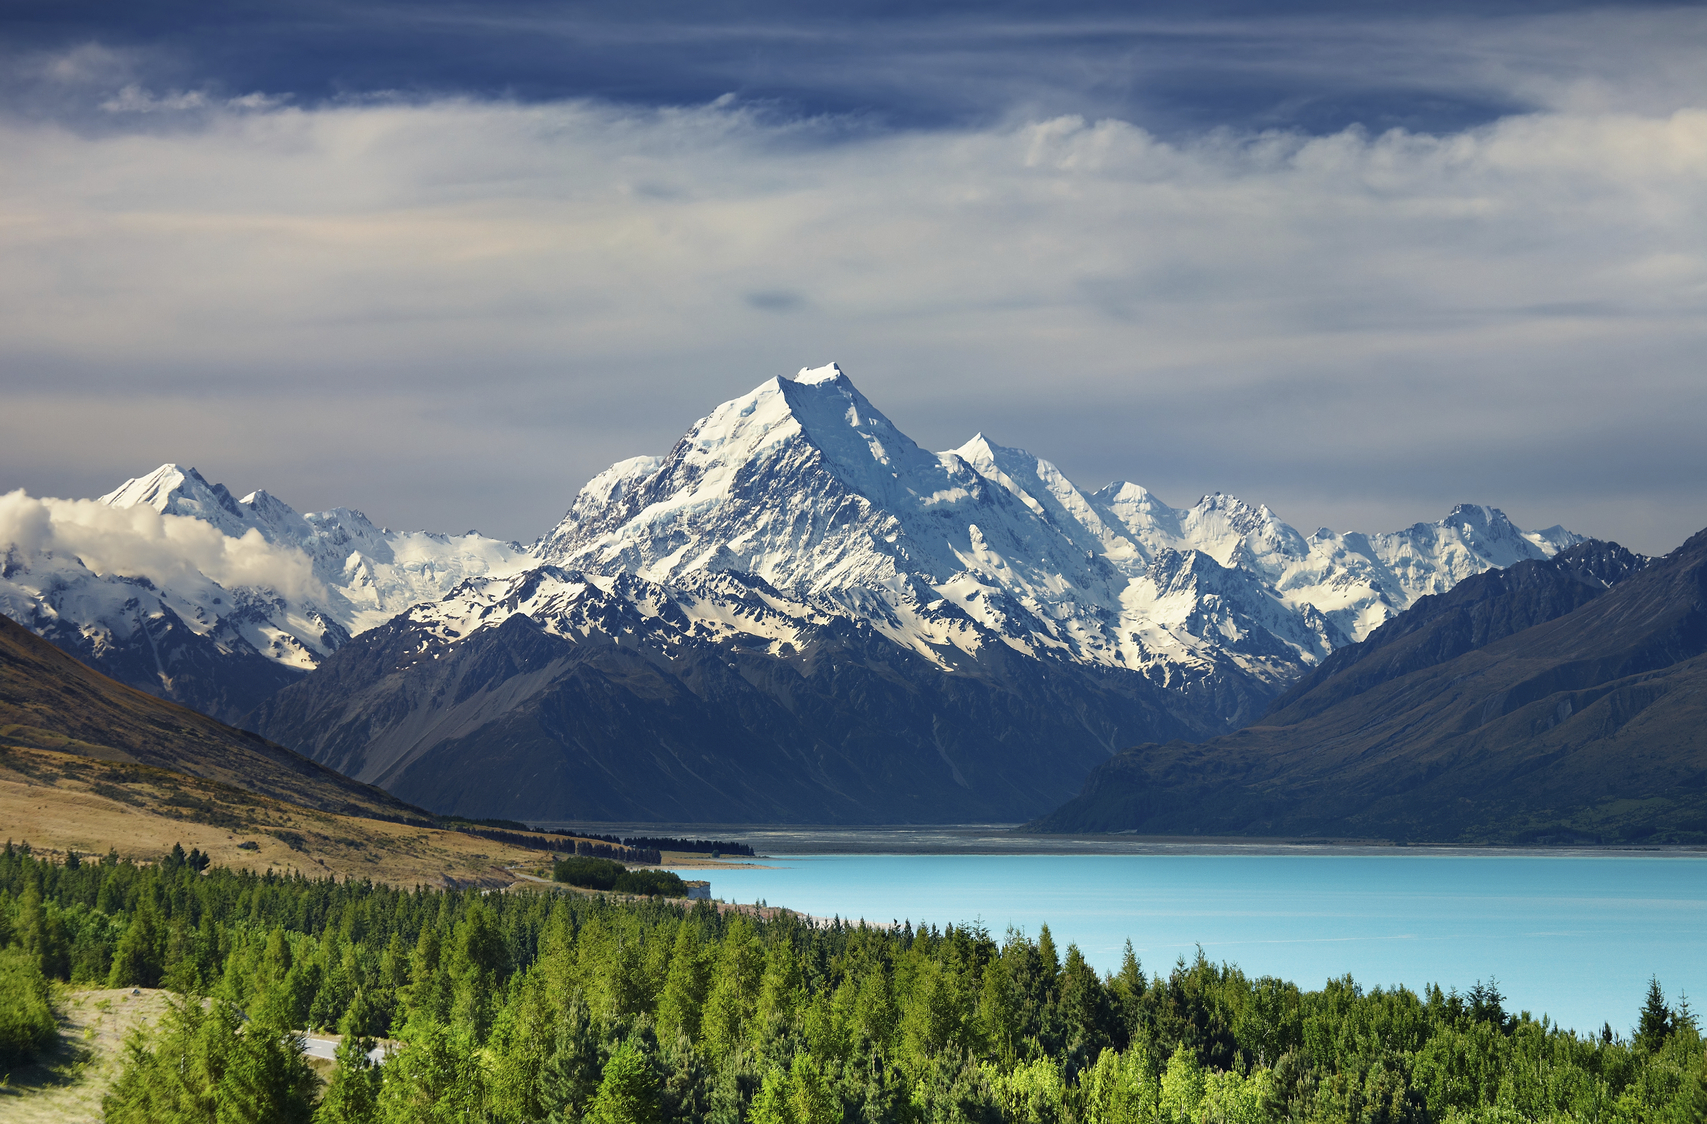 MfE reports on changes to NZ's landscapes – Expert reaction